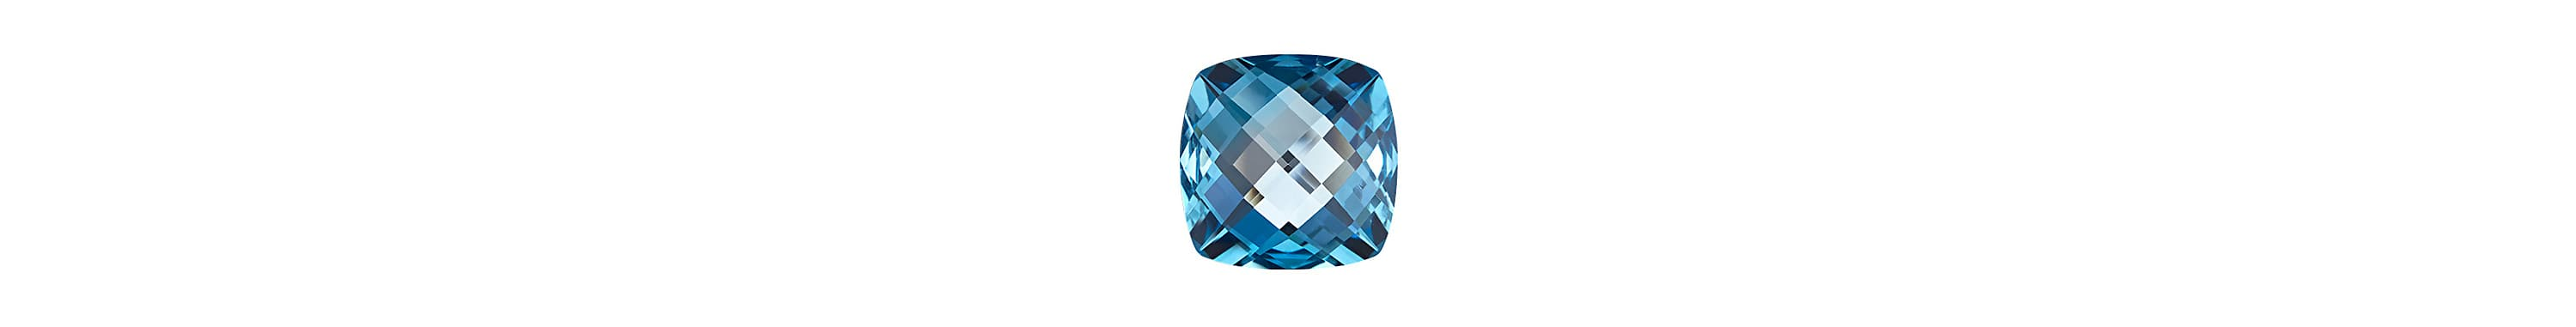 A color photograph shows a close-up shot of an oval-cut blue topaz on a white background.